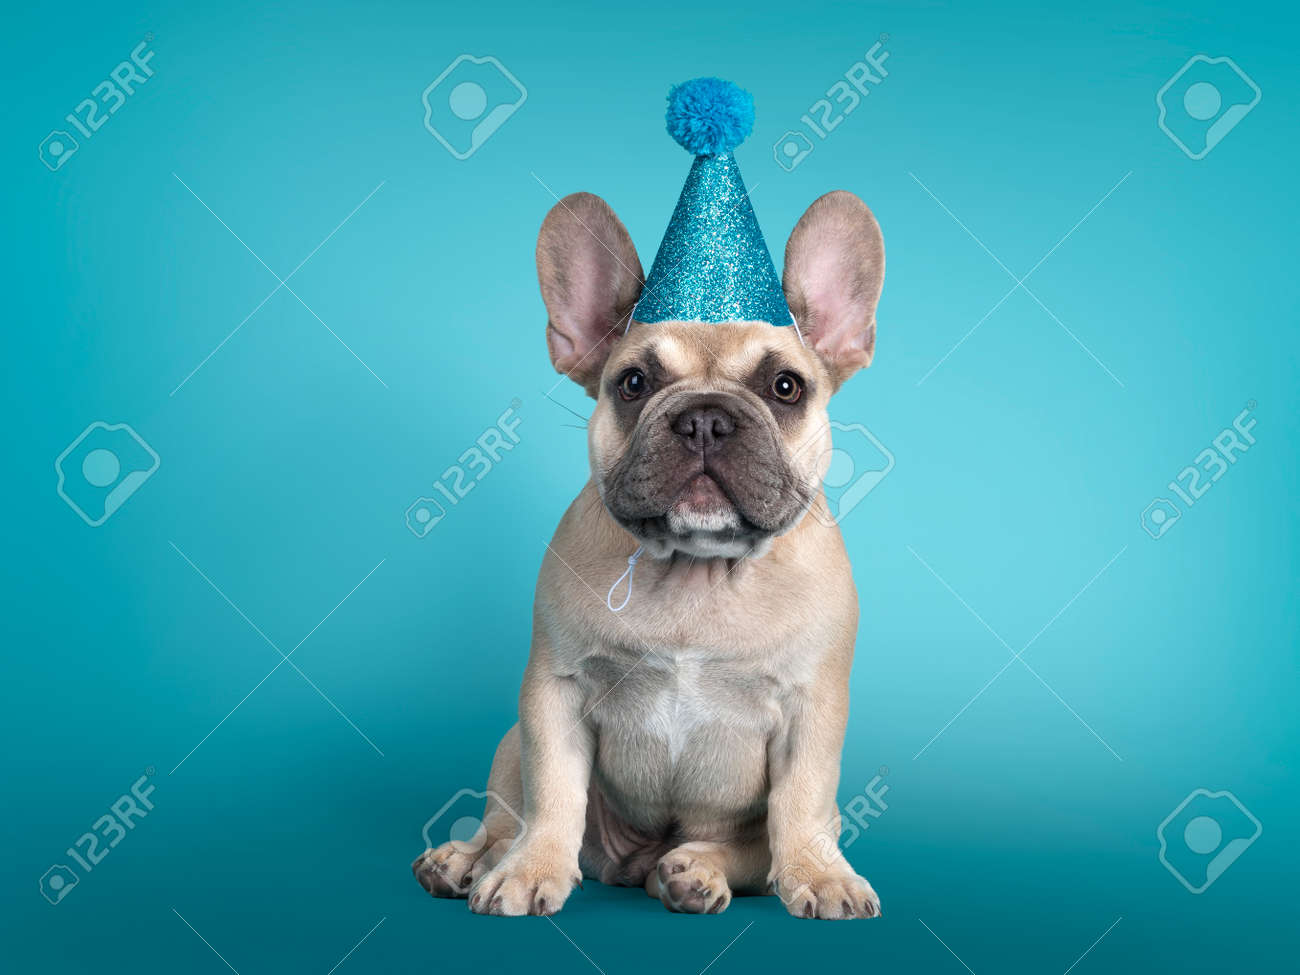 Adorable French Bulldog puppy, sitting up facing front wearing blue glitter party hat. Looking towards camera. Isolated on turquoise background. - 173357240